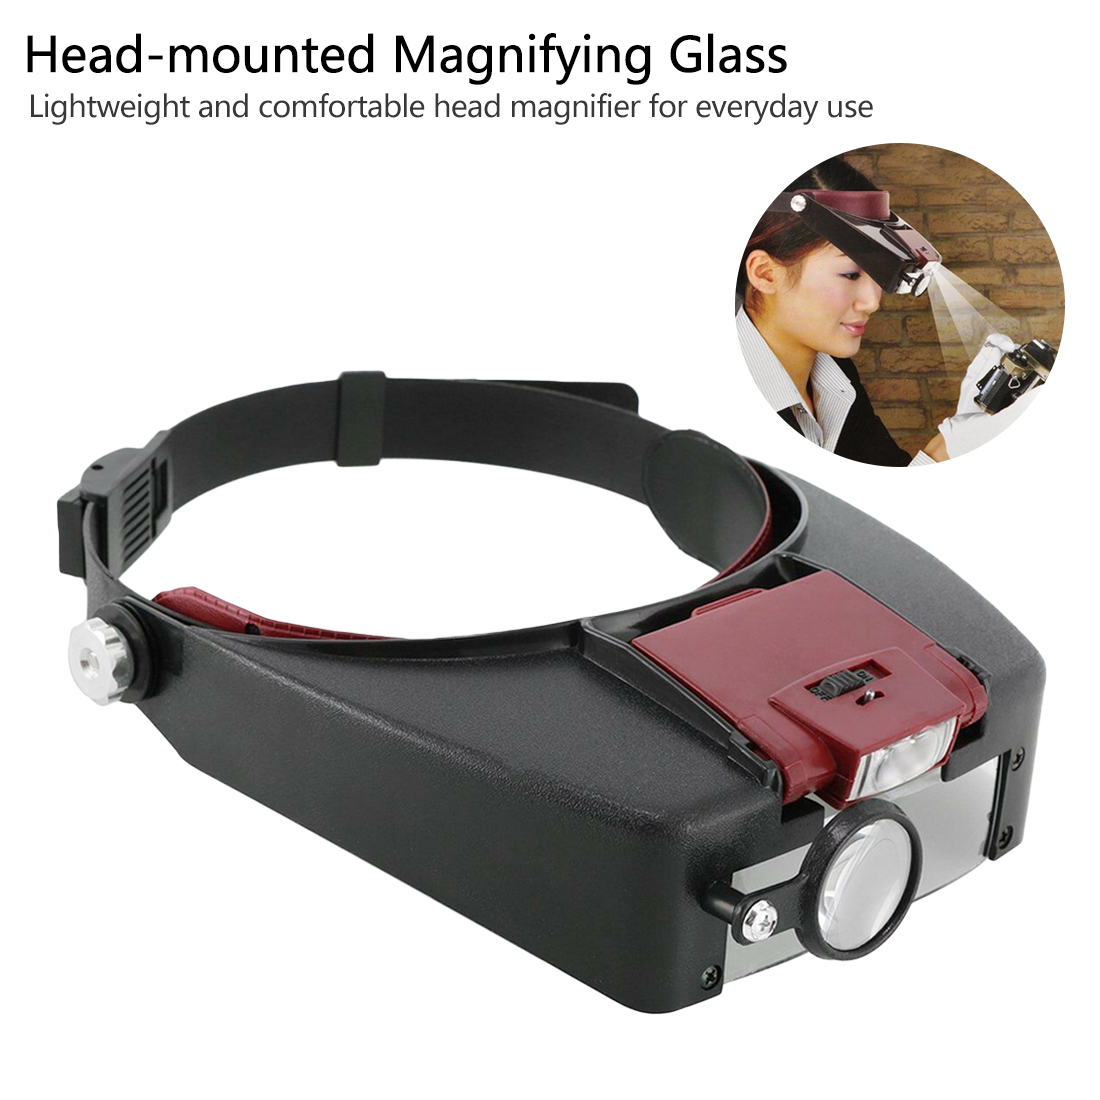 Head Magnifying Glasses With LED Magnifier Magnifying Glass Loupes For Reading Jewelry Watch Repair|Magnifiers| |  - title=